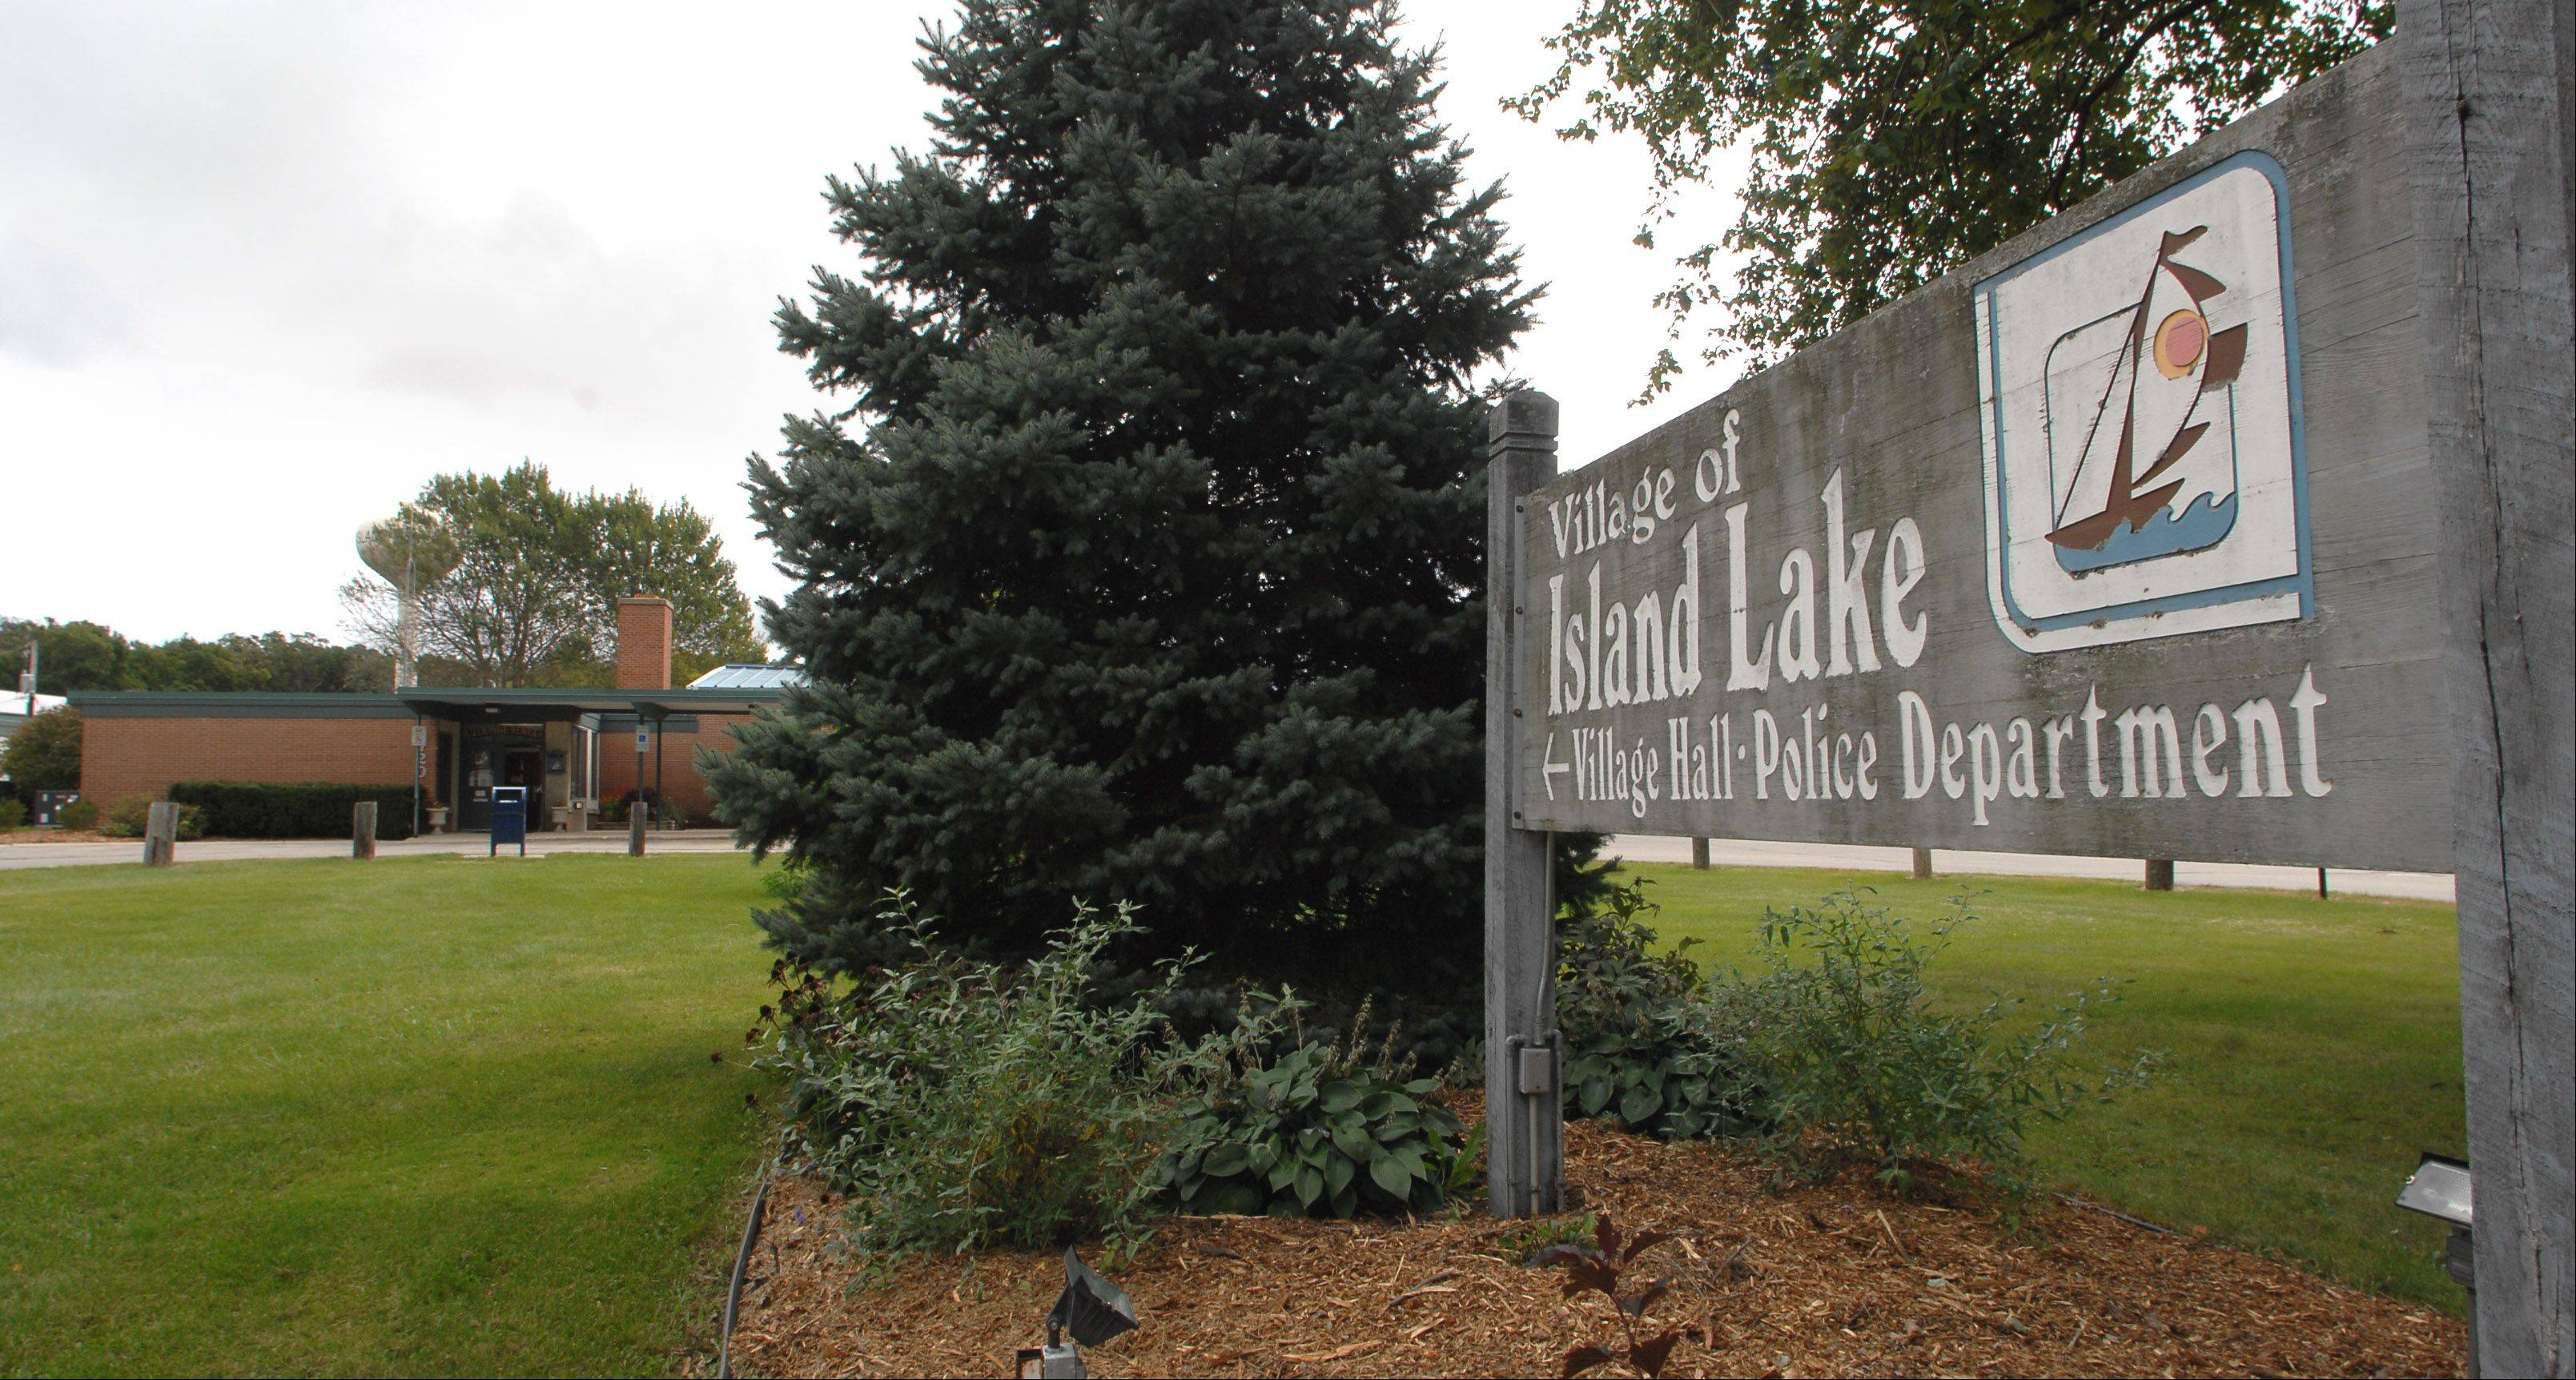 In Island Lake, new debate over new village hall